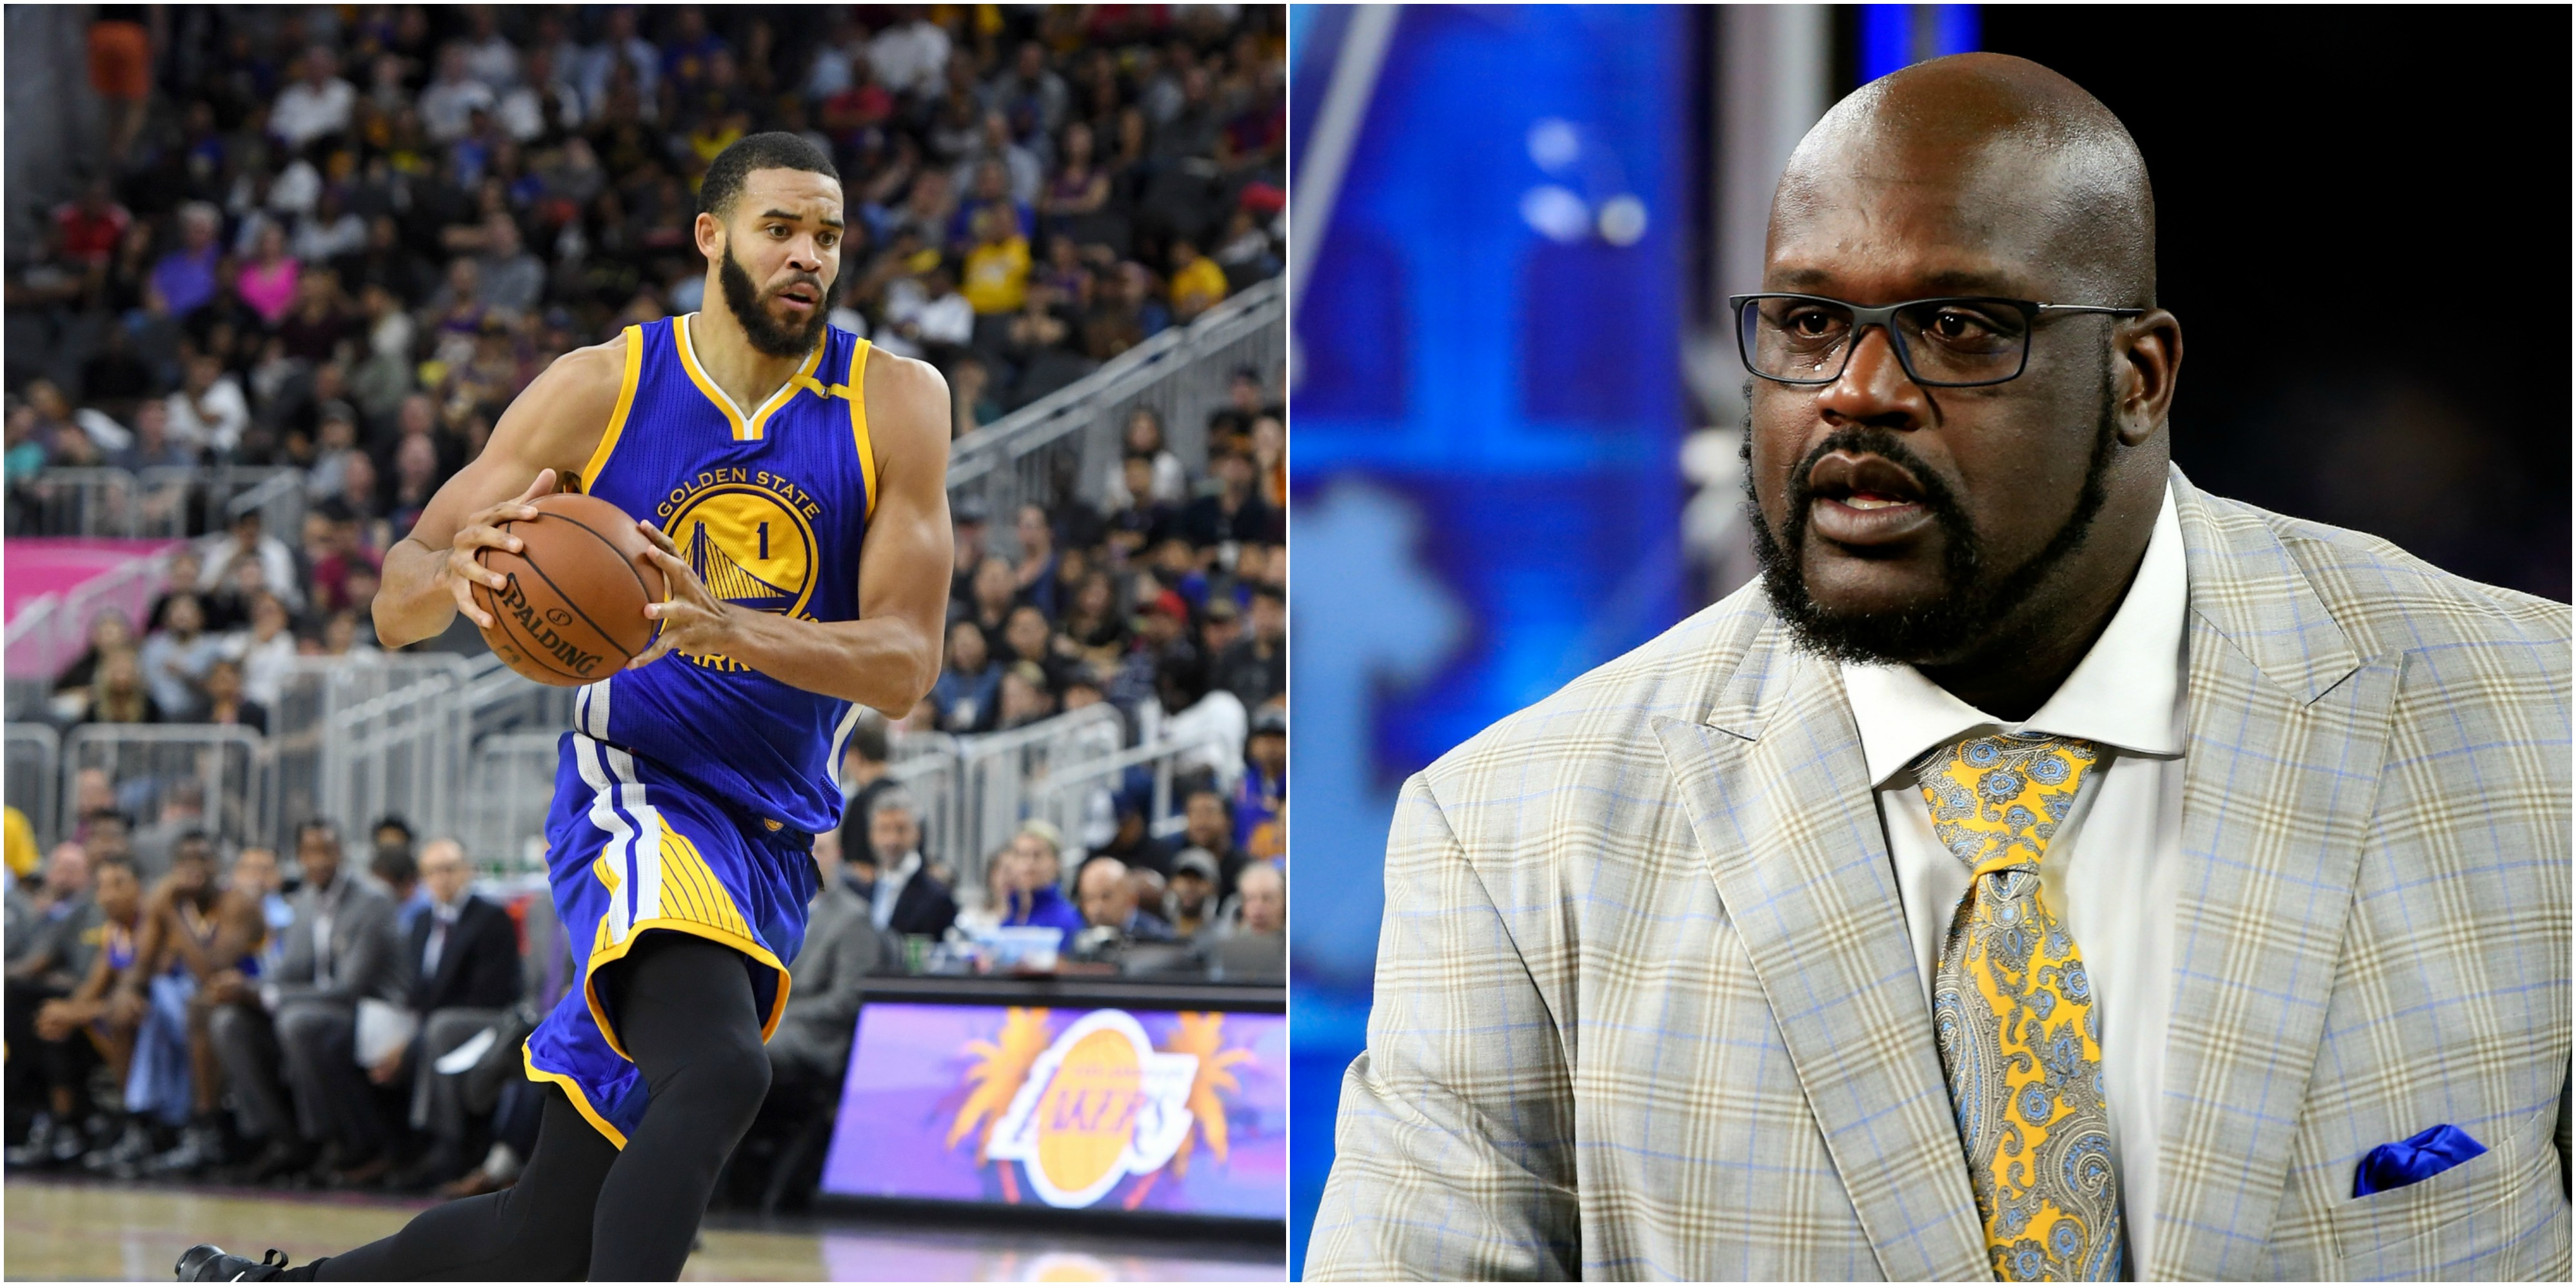 JaVale McGee s Mom Wants Shaquille O Neal To Lose His Job For